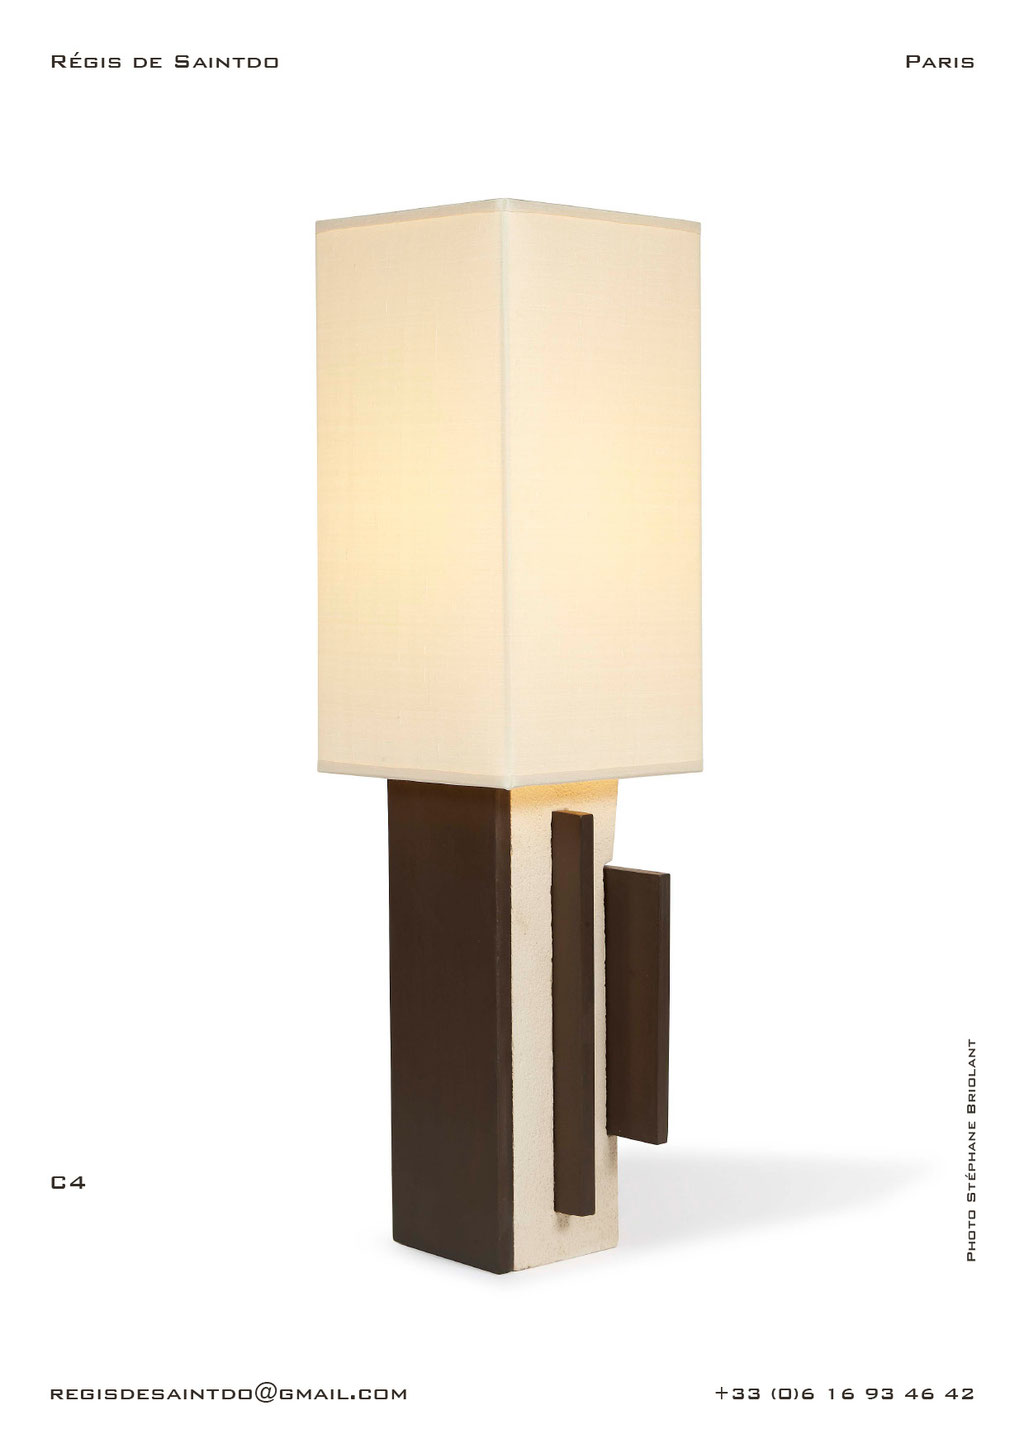 Lamp-C4-white-rough-brown-polished-handmade-unique